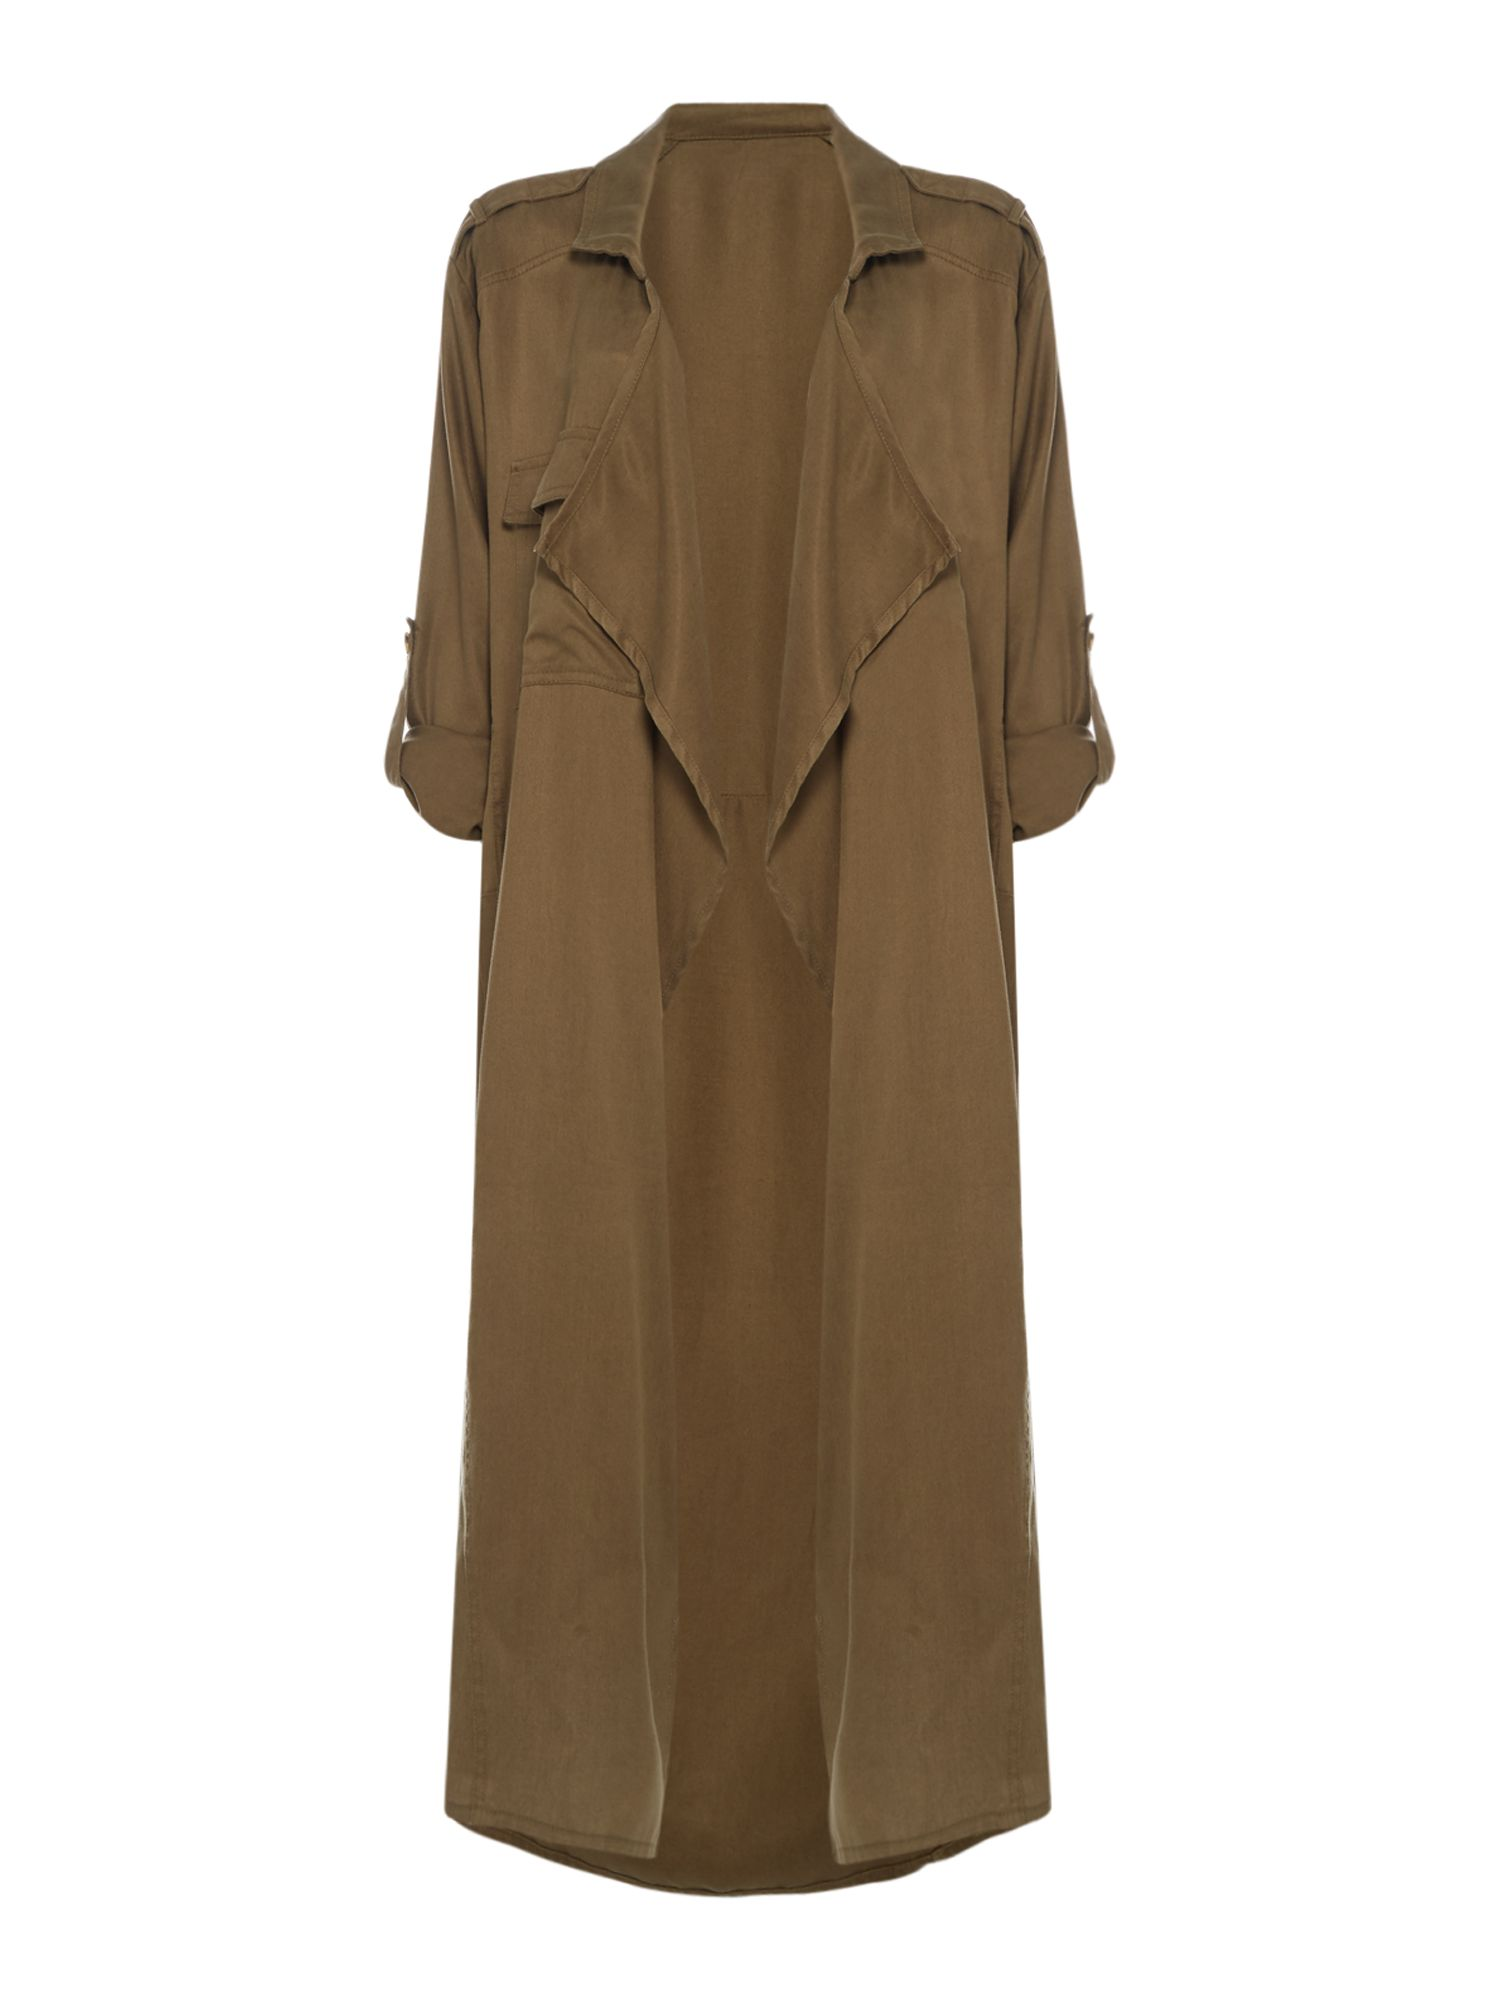 Label Lab Drape Duster Coat, Khaki